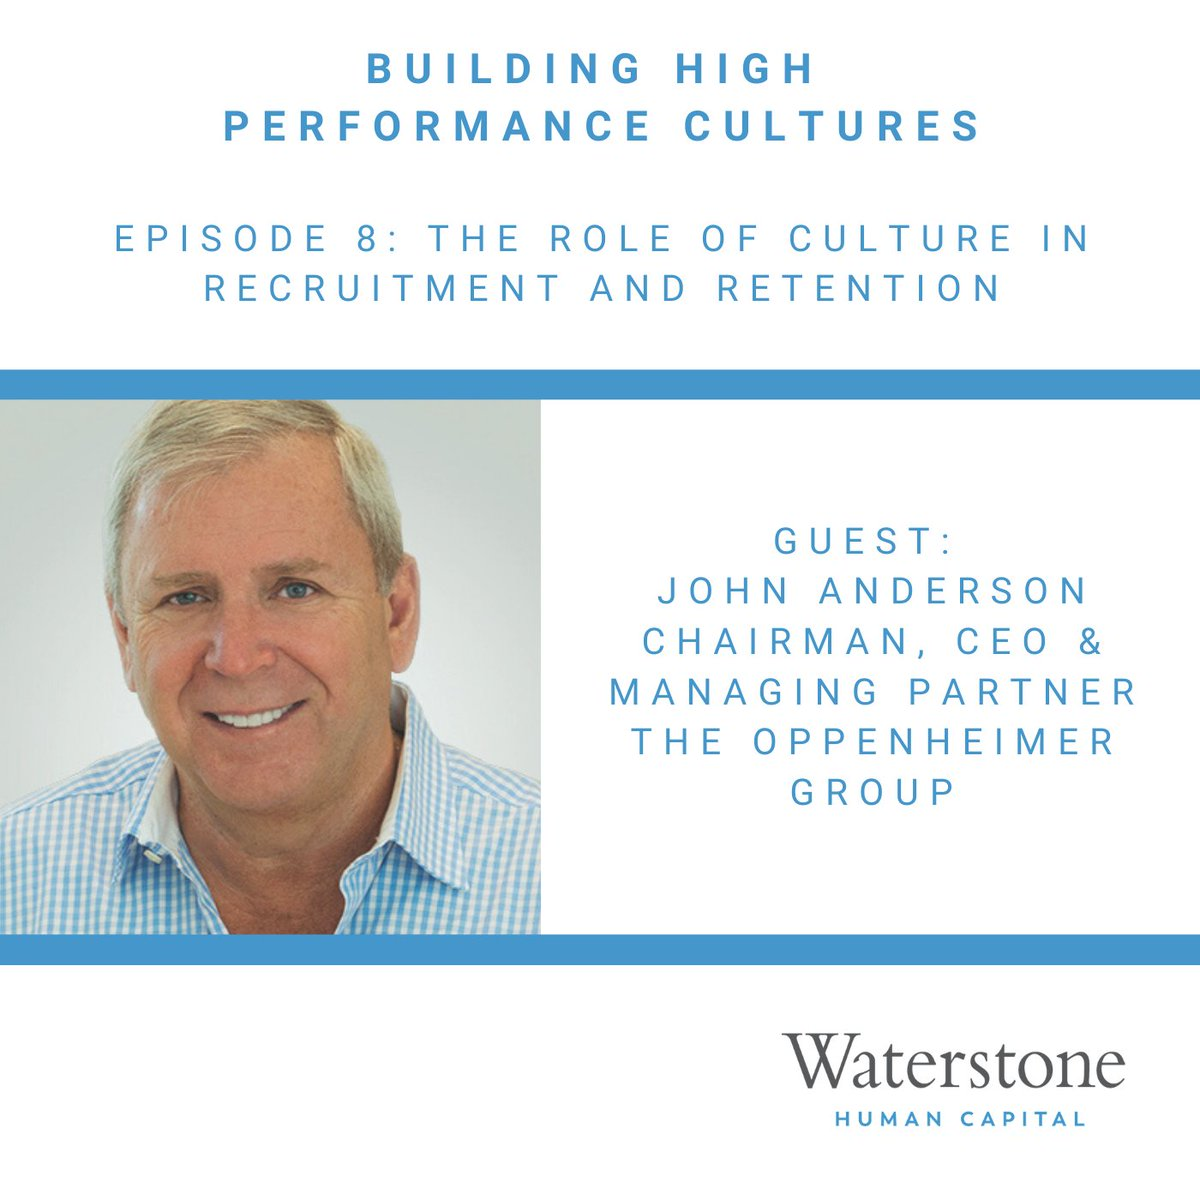 For episode 8 of Building High Performance Cultures, we talk with John Anderson of @OppyProduce about the role that culture plays in a company's recruitment and retention strategy.  Listen at https://t.co/G0J9lbazv0 #leadership #corporateculture #recruitment https://t.co/u6hOcMwkIA